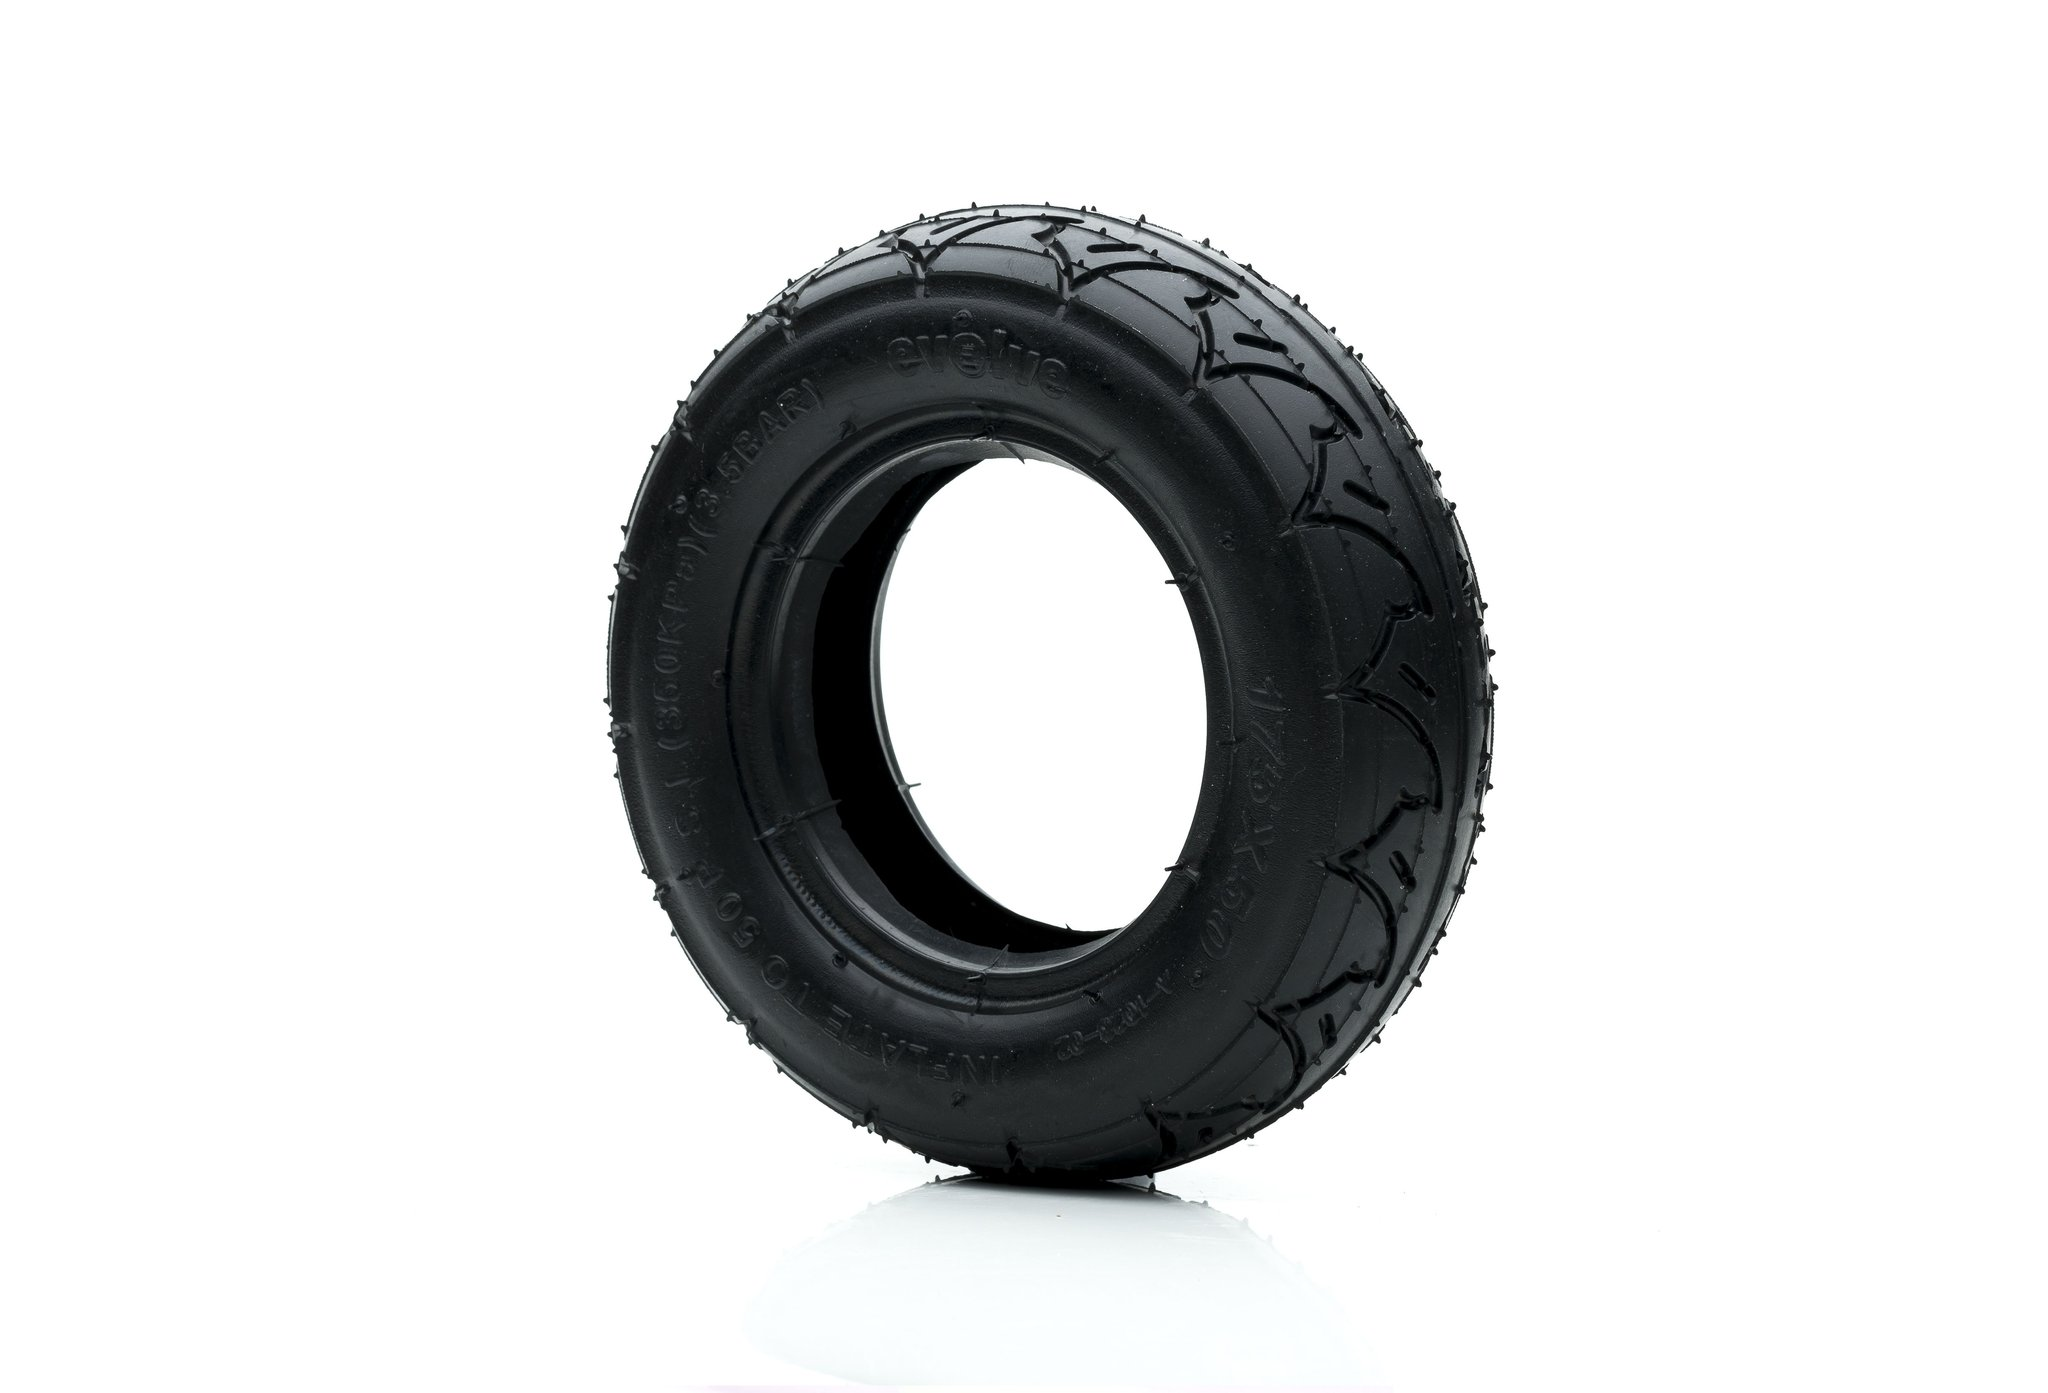 Evolve 175mm (7 inch) all terrain wheels in black on a white background